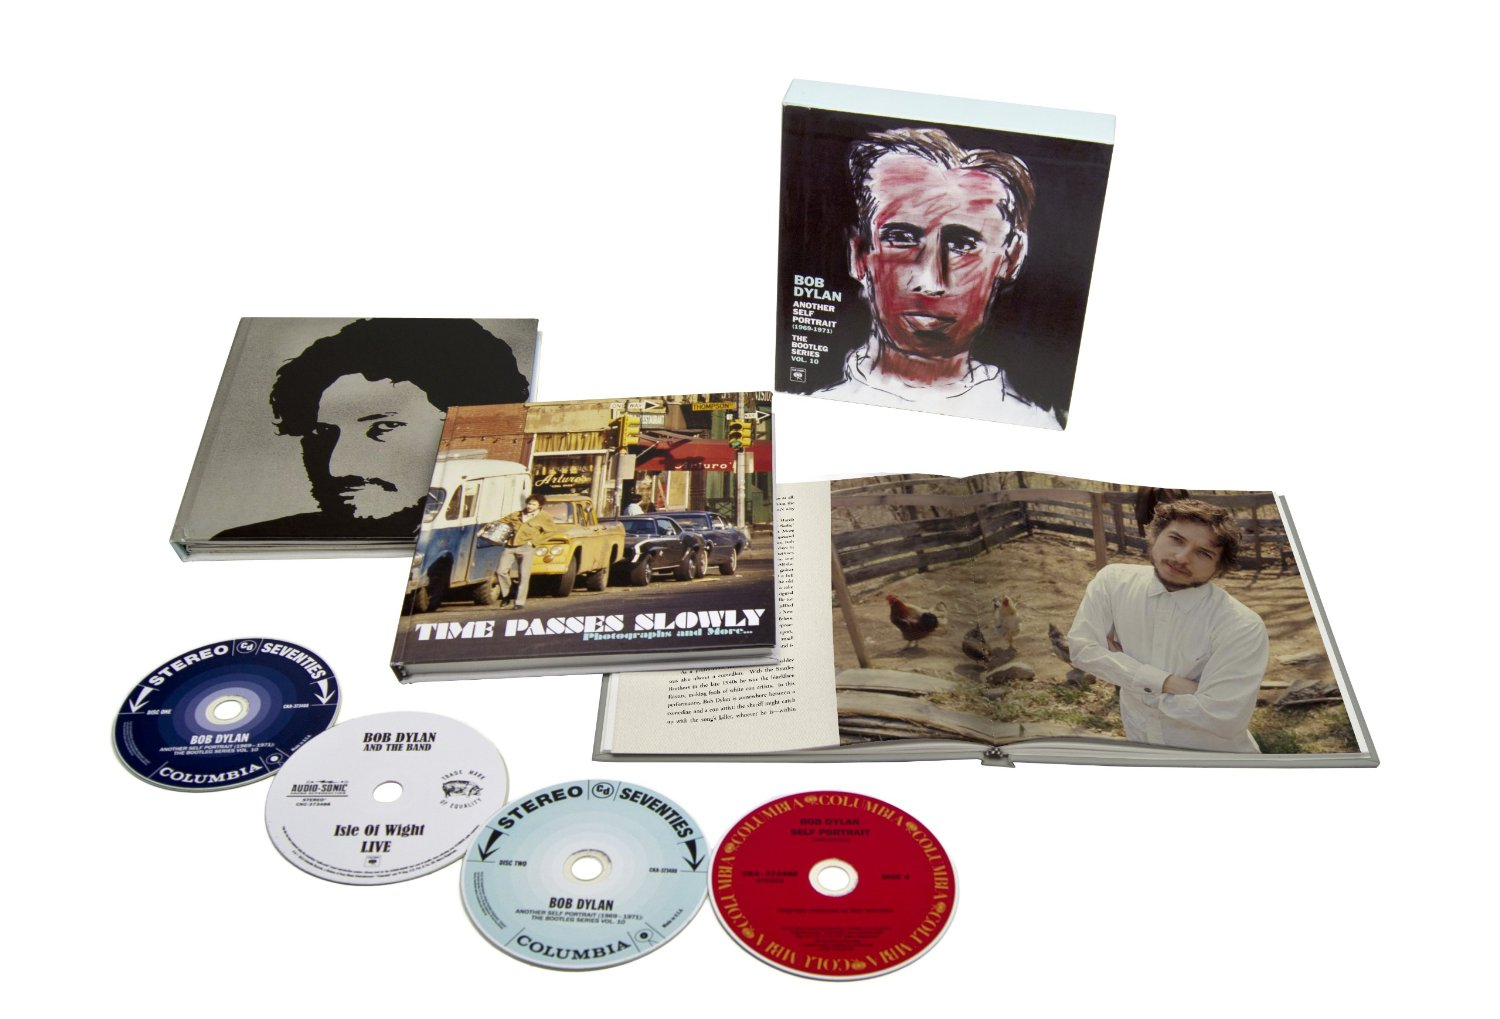 Bob Dylan Another Self Portrait Deluxe Portrait Of The Artist...